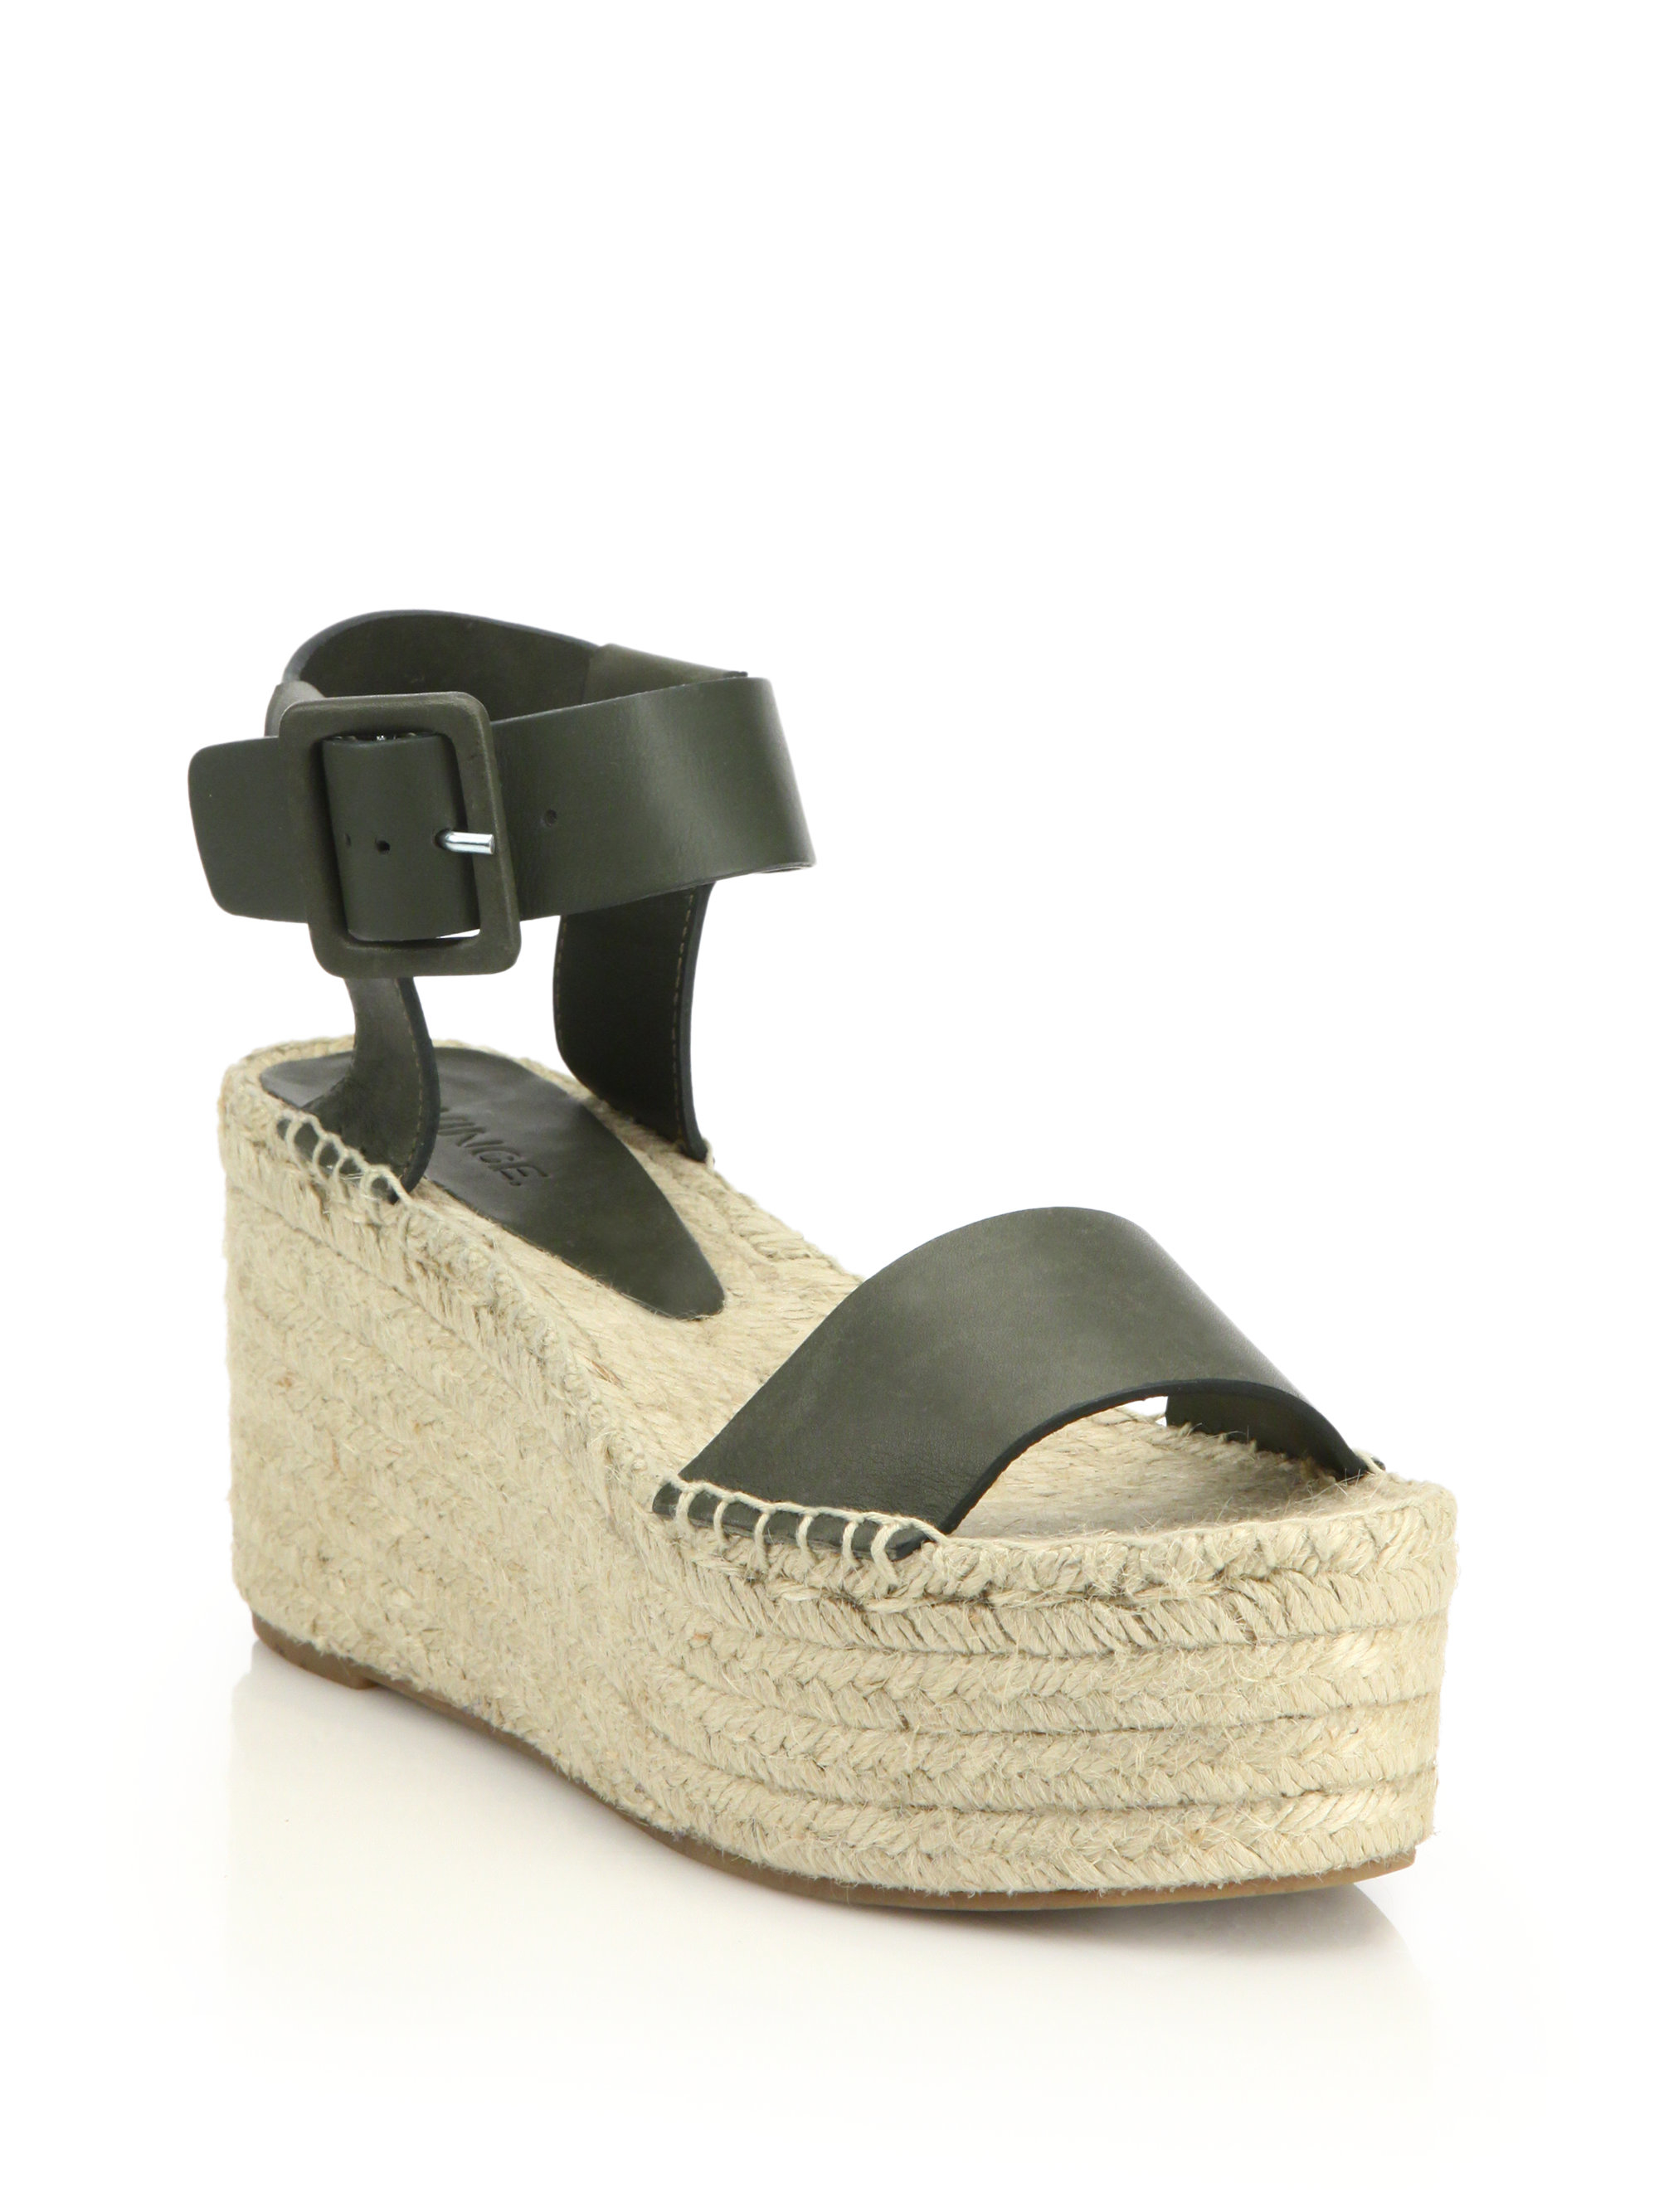 Lyst - Vince Abby Leather Espadrille Platform Wedge Sandals in Green